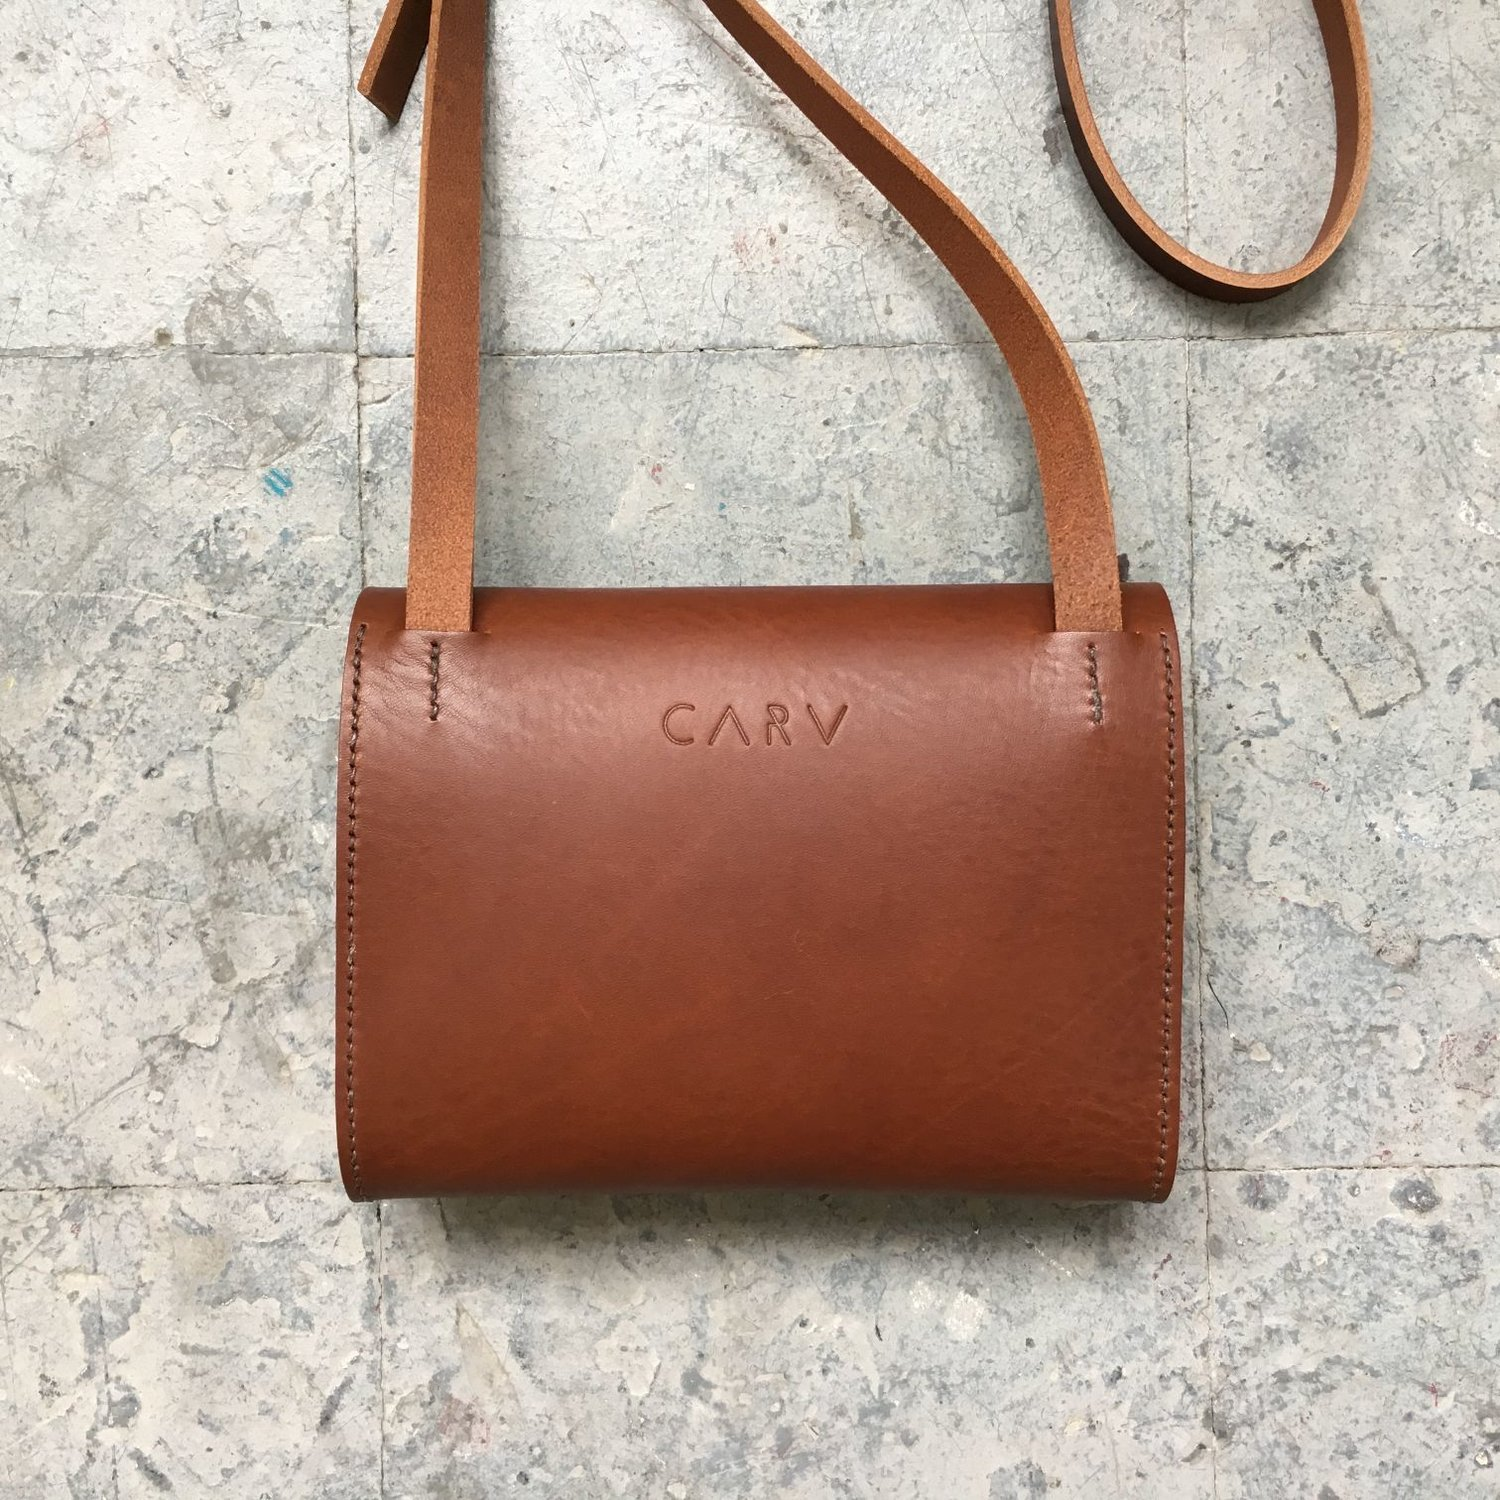 hot-selling genuine official photos top-rated official Brown Leather Crossbody Bag - Pioneer Mini — CARV